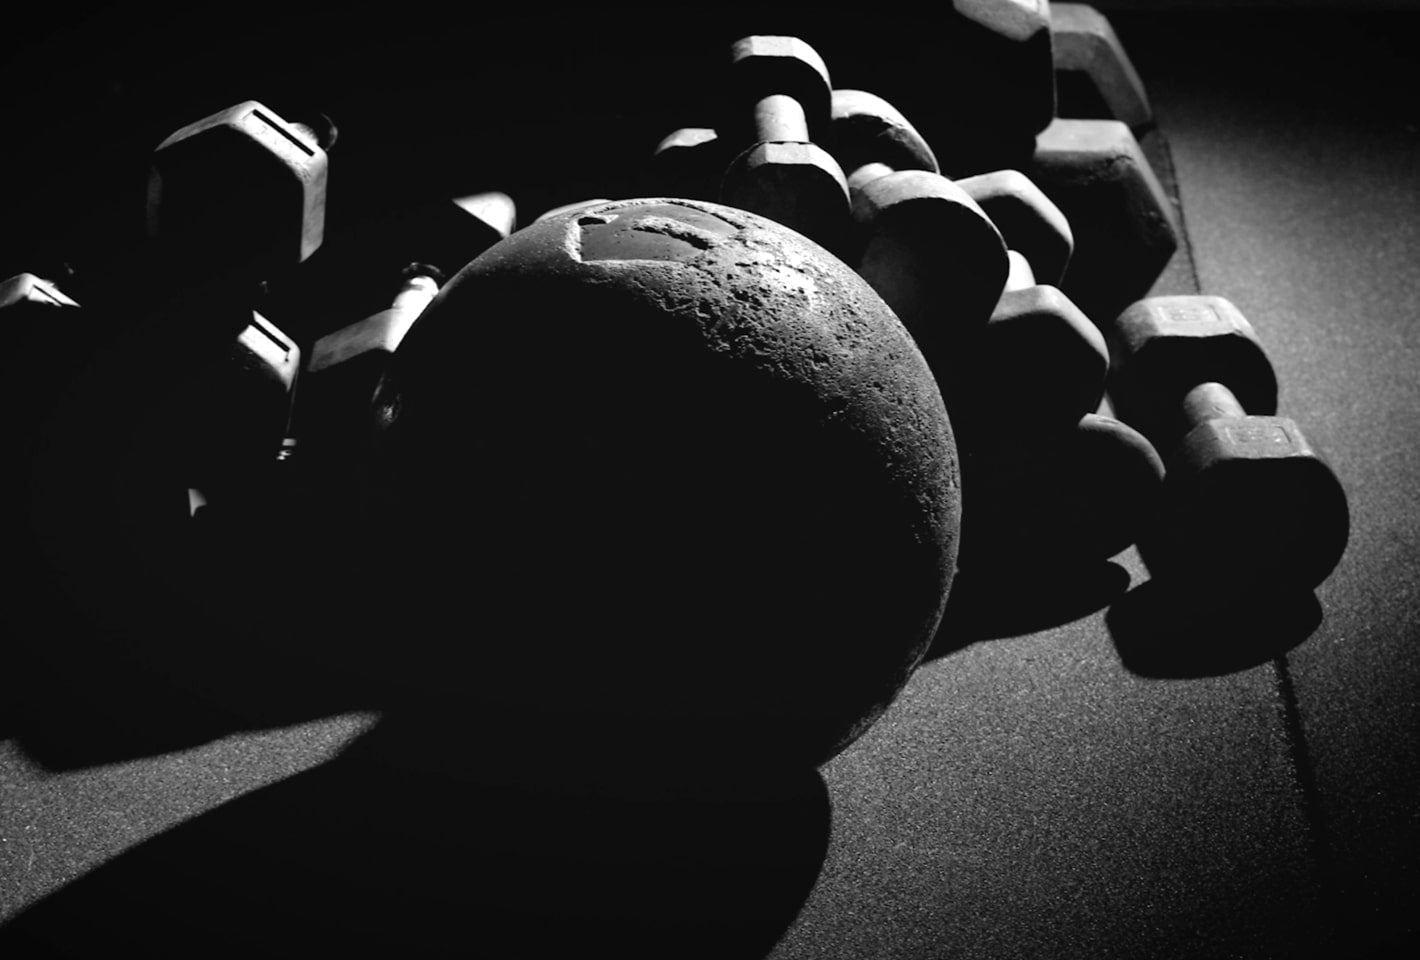 Medicine ball and dumbbells